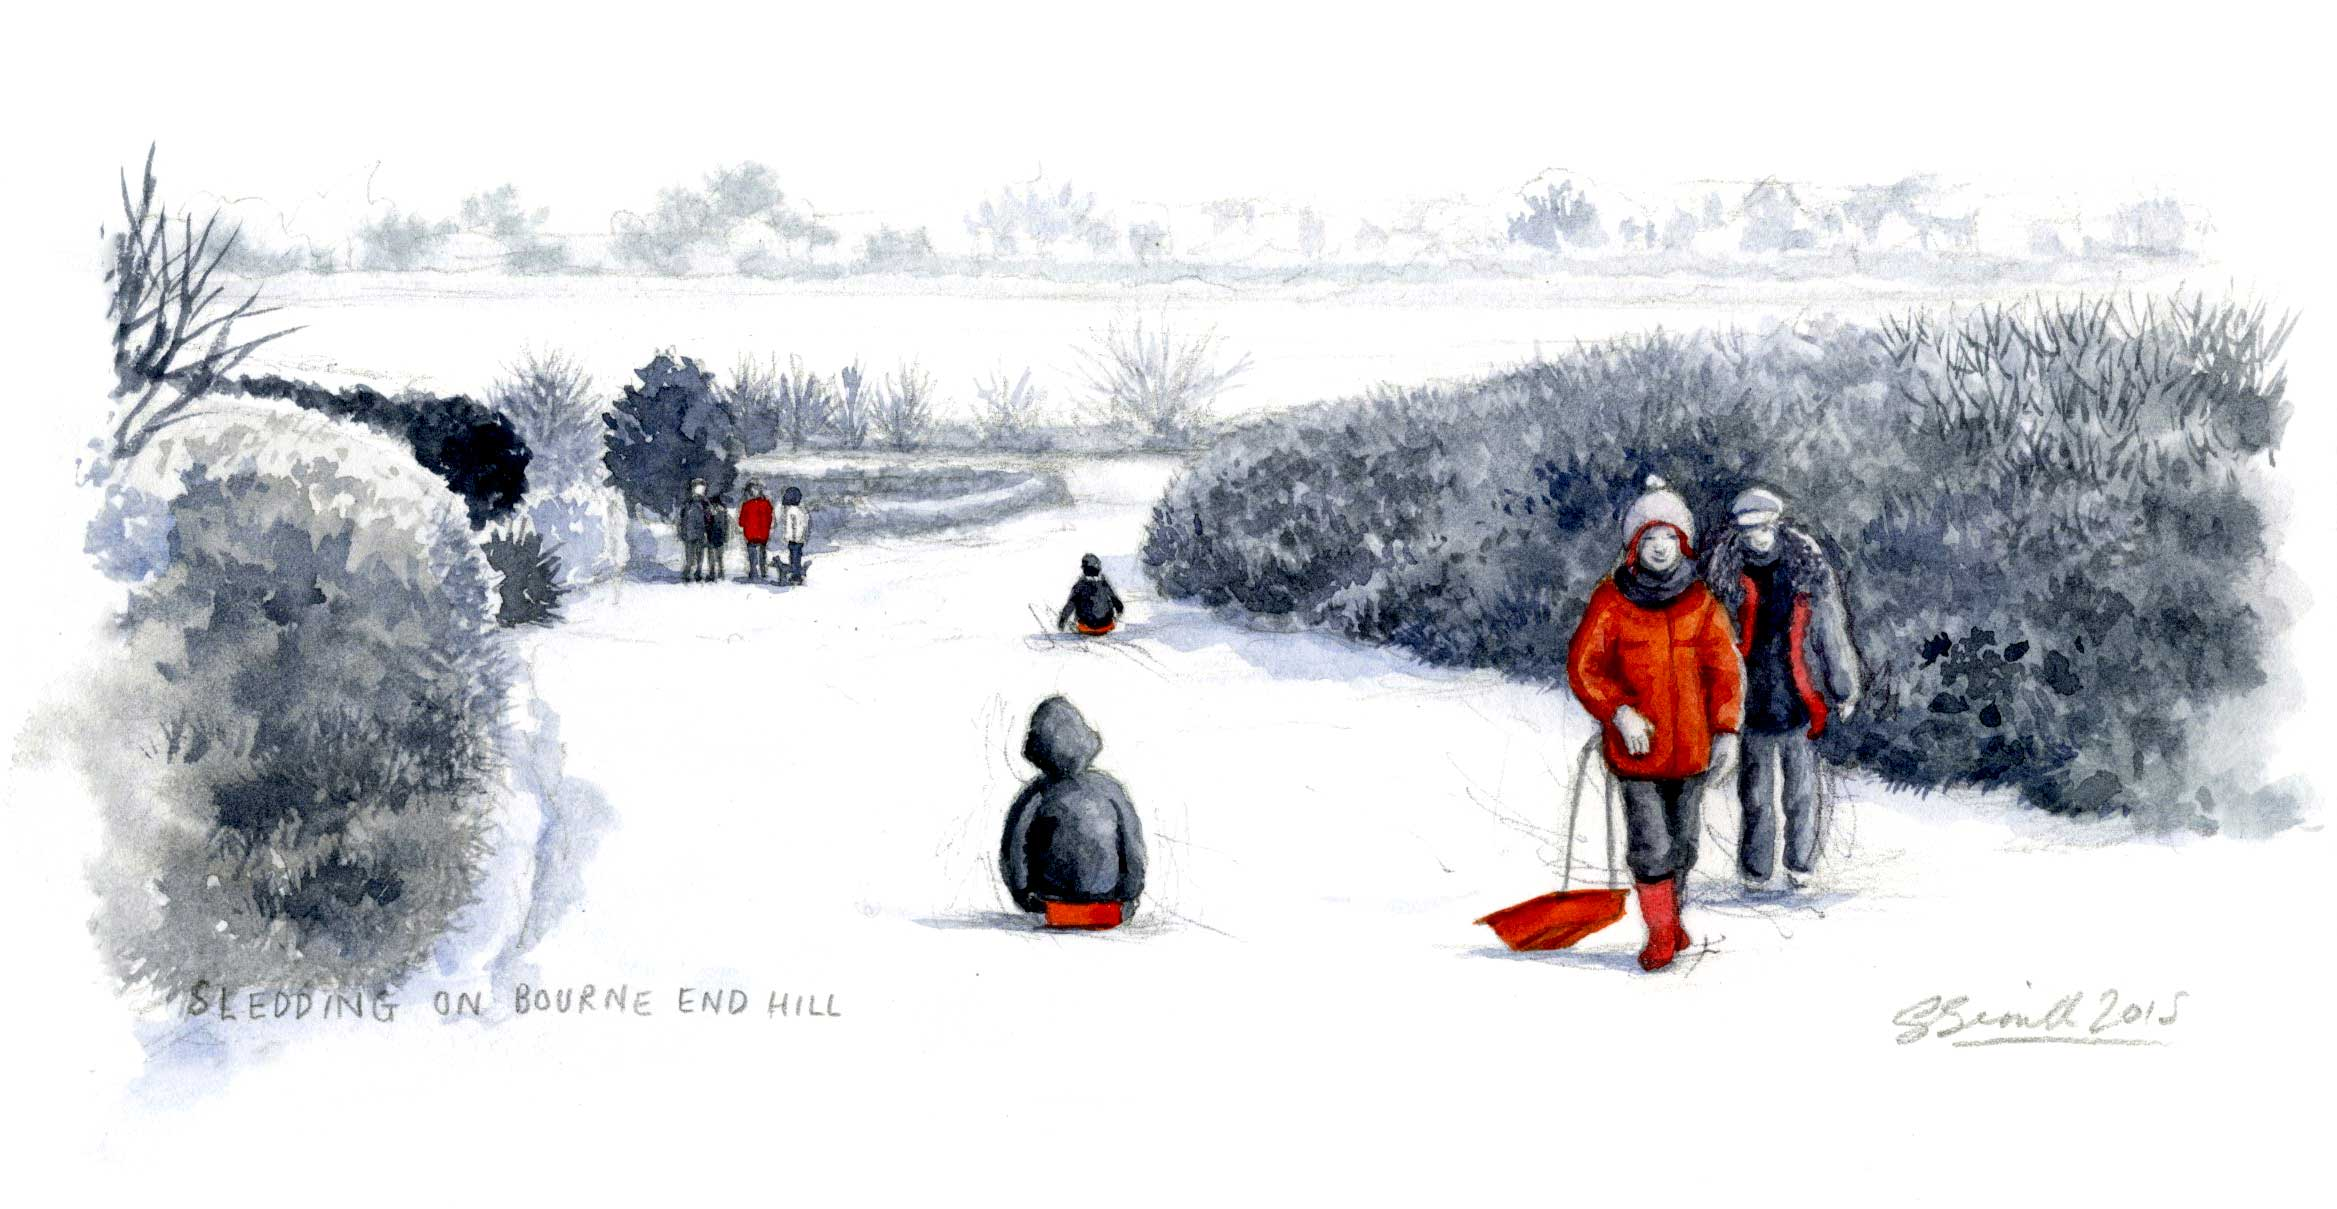 sledding-on-bourne-end-hill_wood-end_gail-yerrill